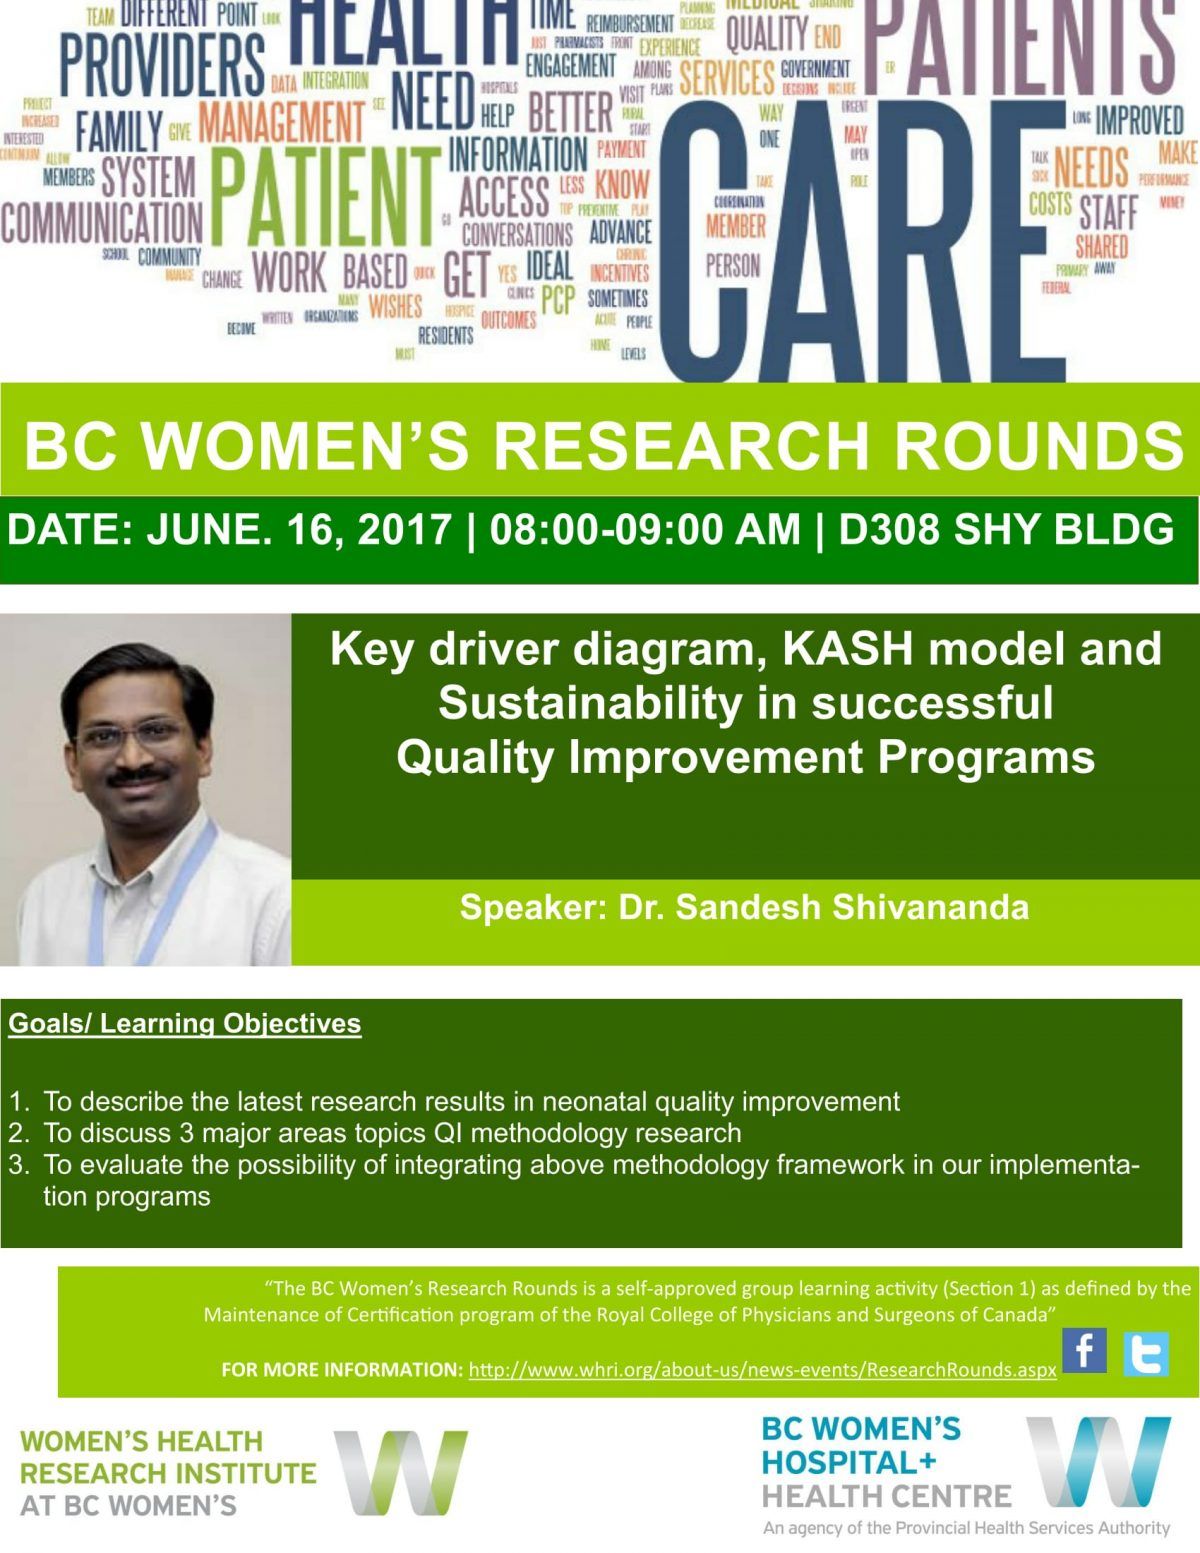 BCW Research Rounds- Dr. Sandesh Shivananda- June. 16, 2017-1